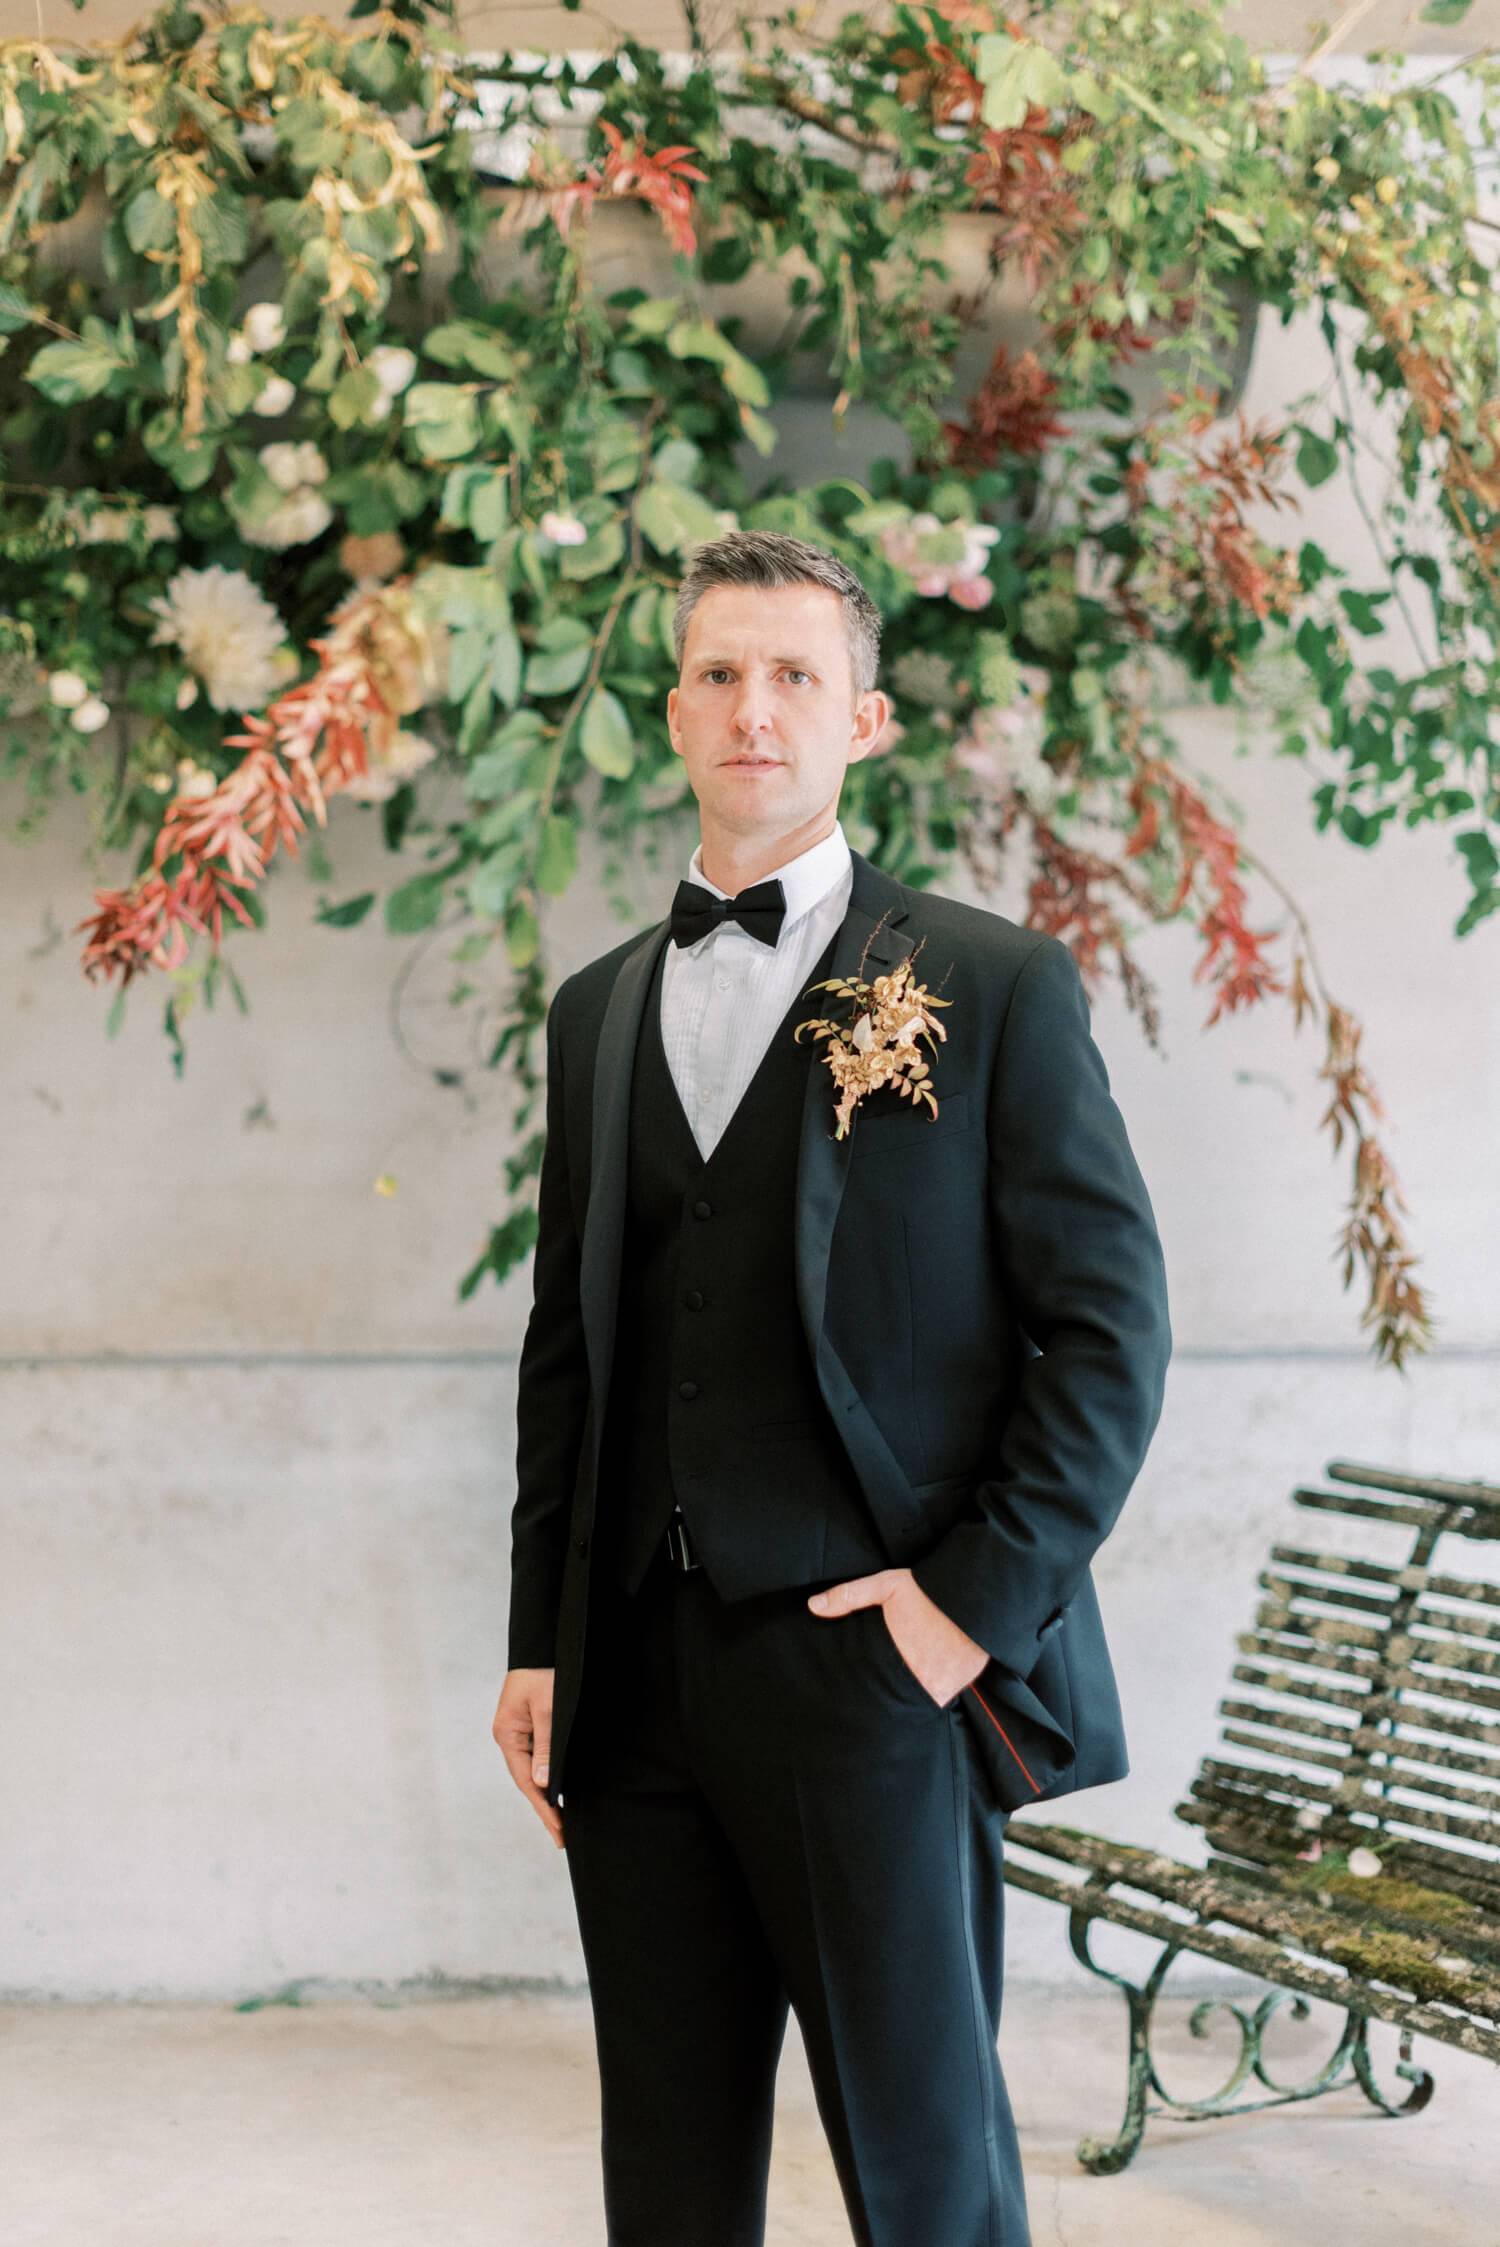 English Countryside Autumn Wedding at a Flower Farm | Photos and Text by Cristina Ilao Photography | In photo: groom wearing a black tuxedo with an autumn boutonniere